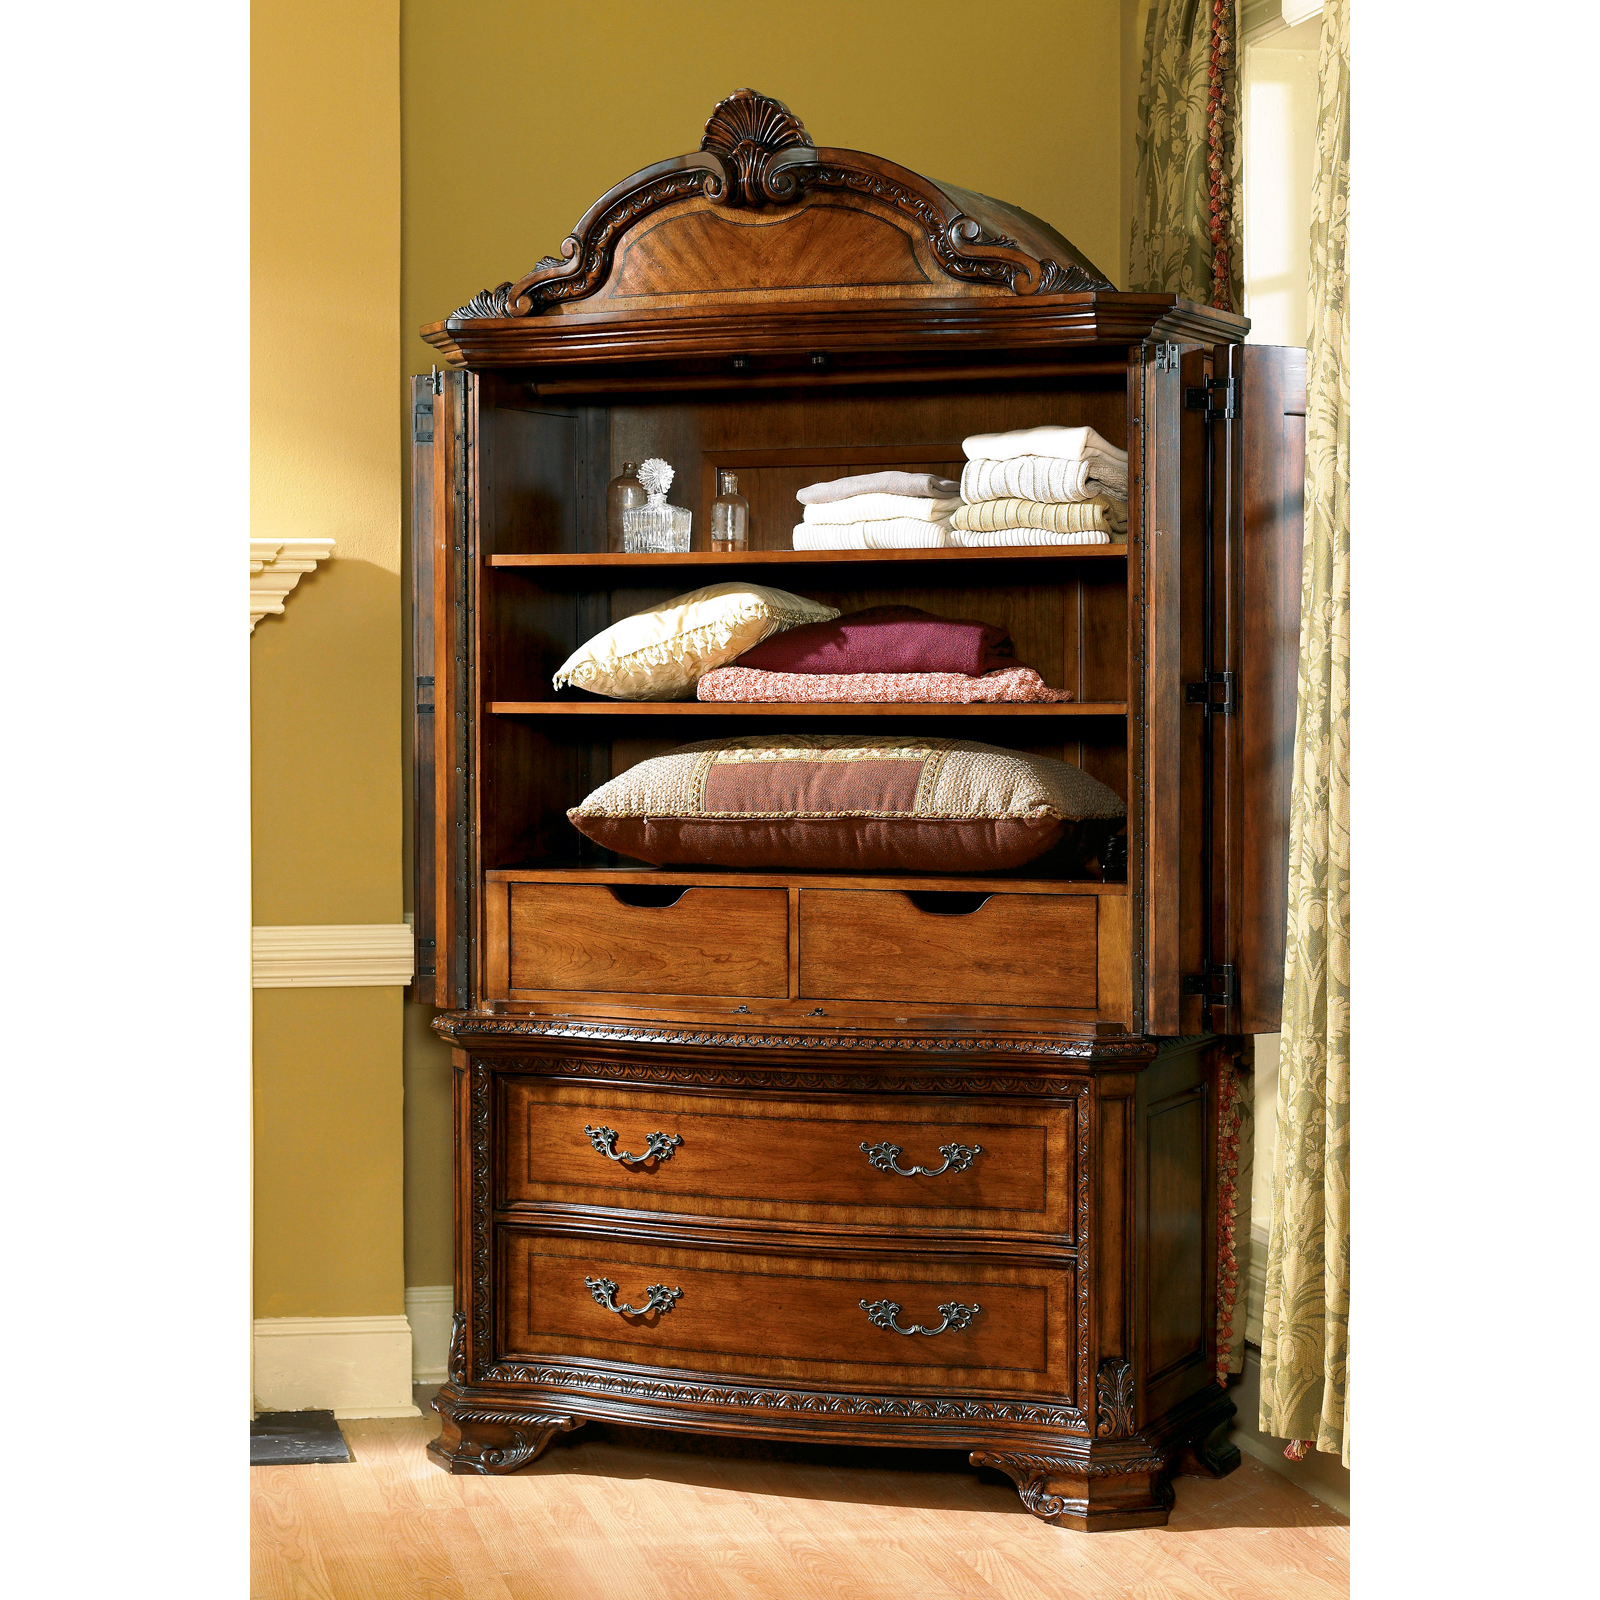 A.R.T. Furniture Old World Bedroom Armoire - Pomegranate | Hayneedle